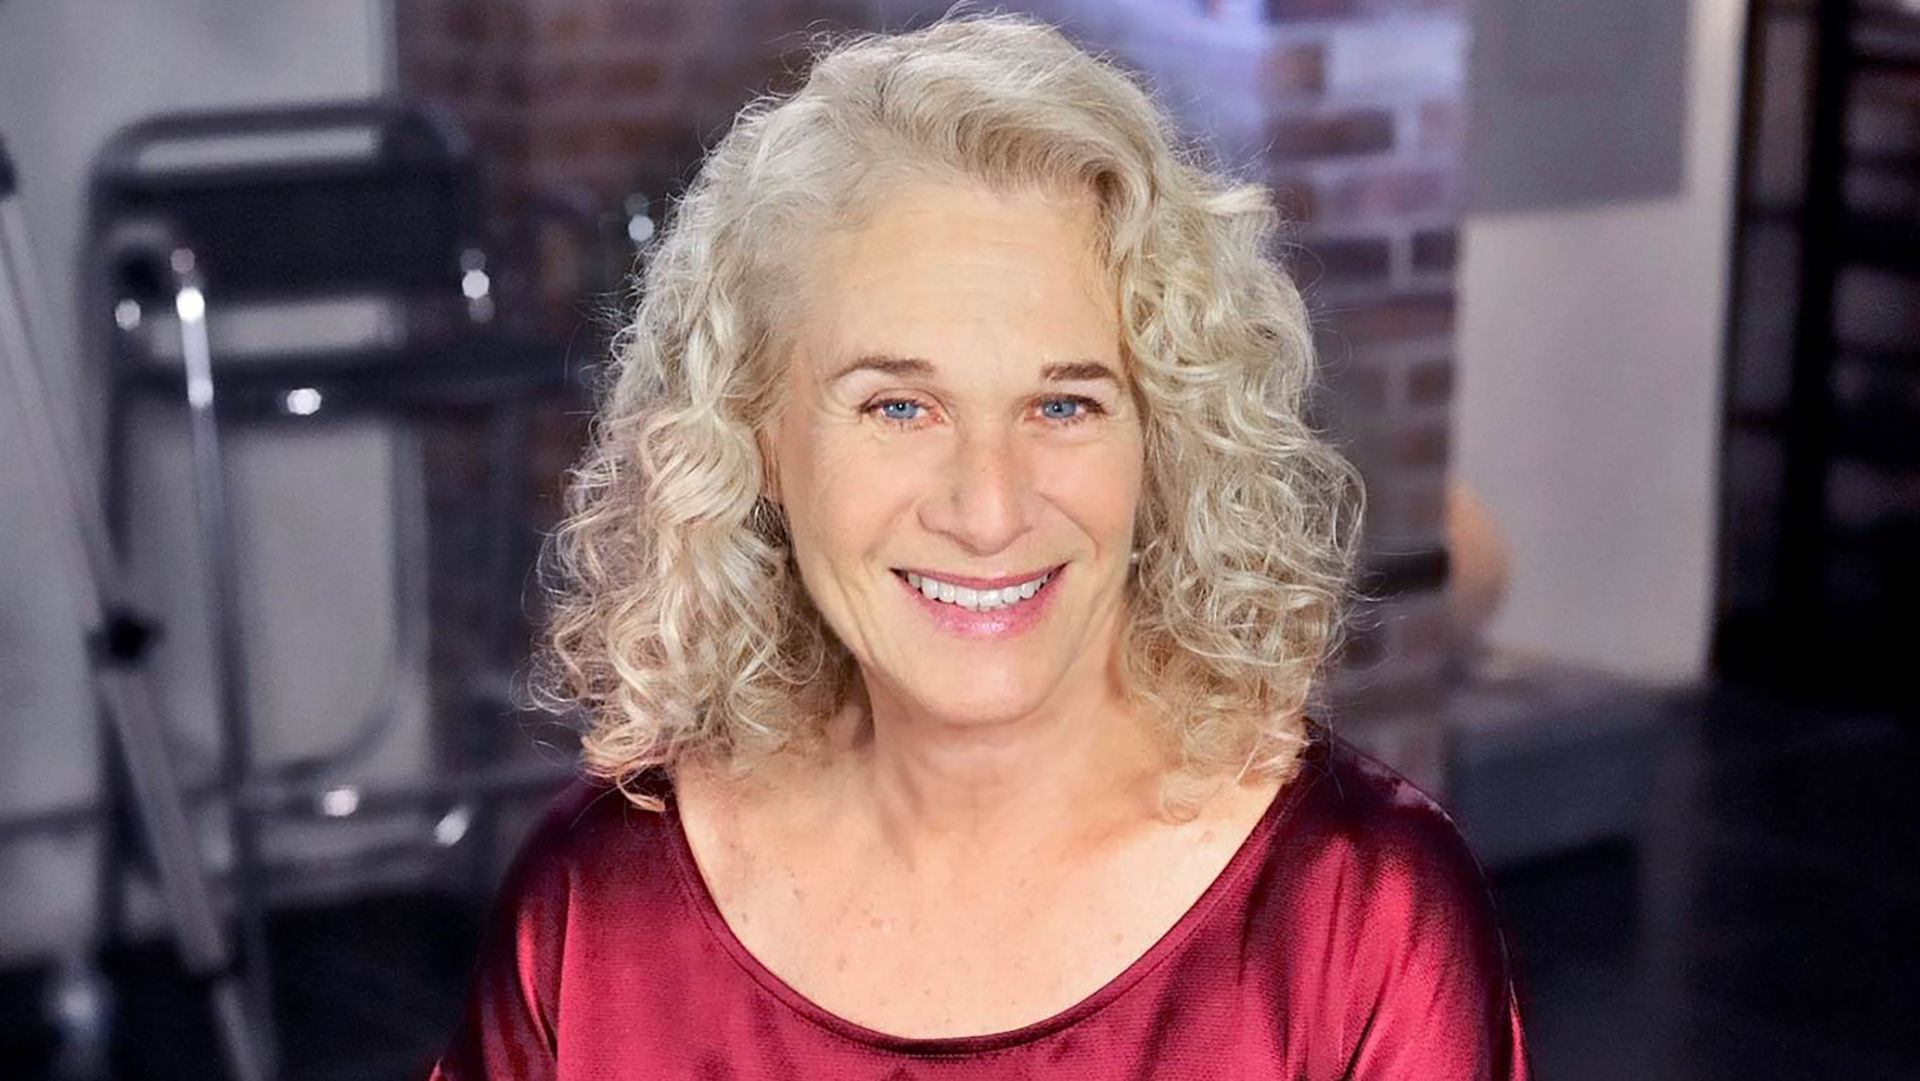 Carole King. Photo: Joseph Sinnott / ©2015 THIRTEEN PRODUCTIONS LLC. All rights reserved.